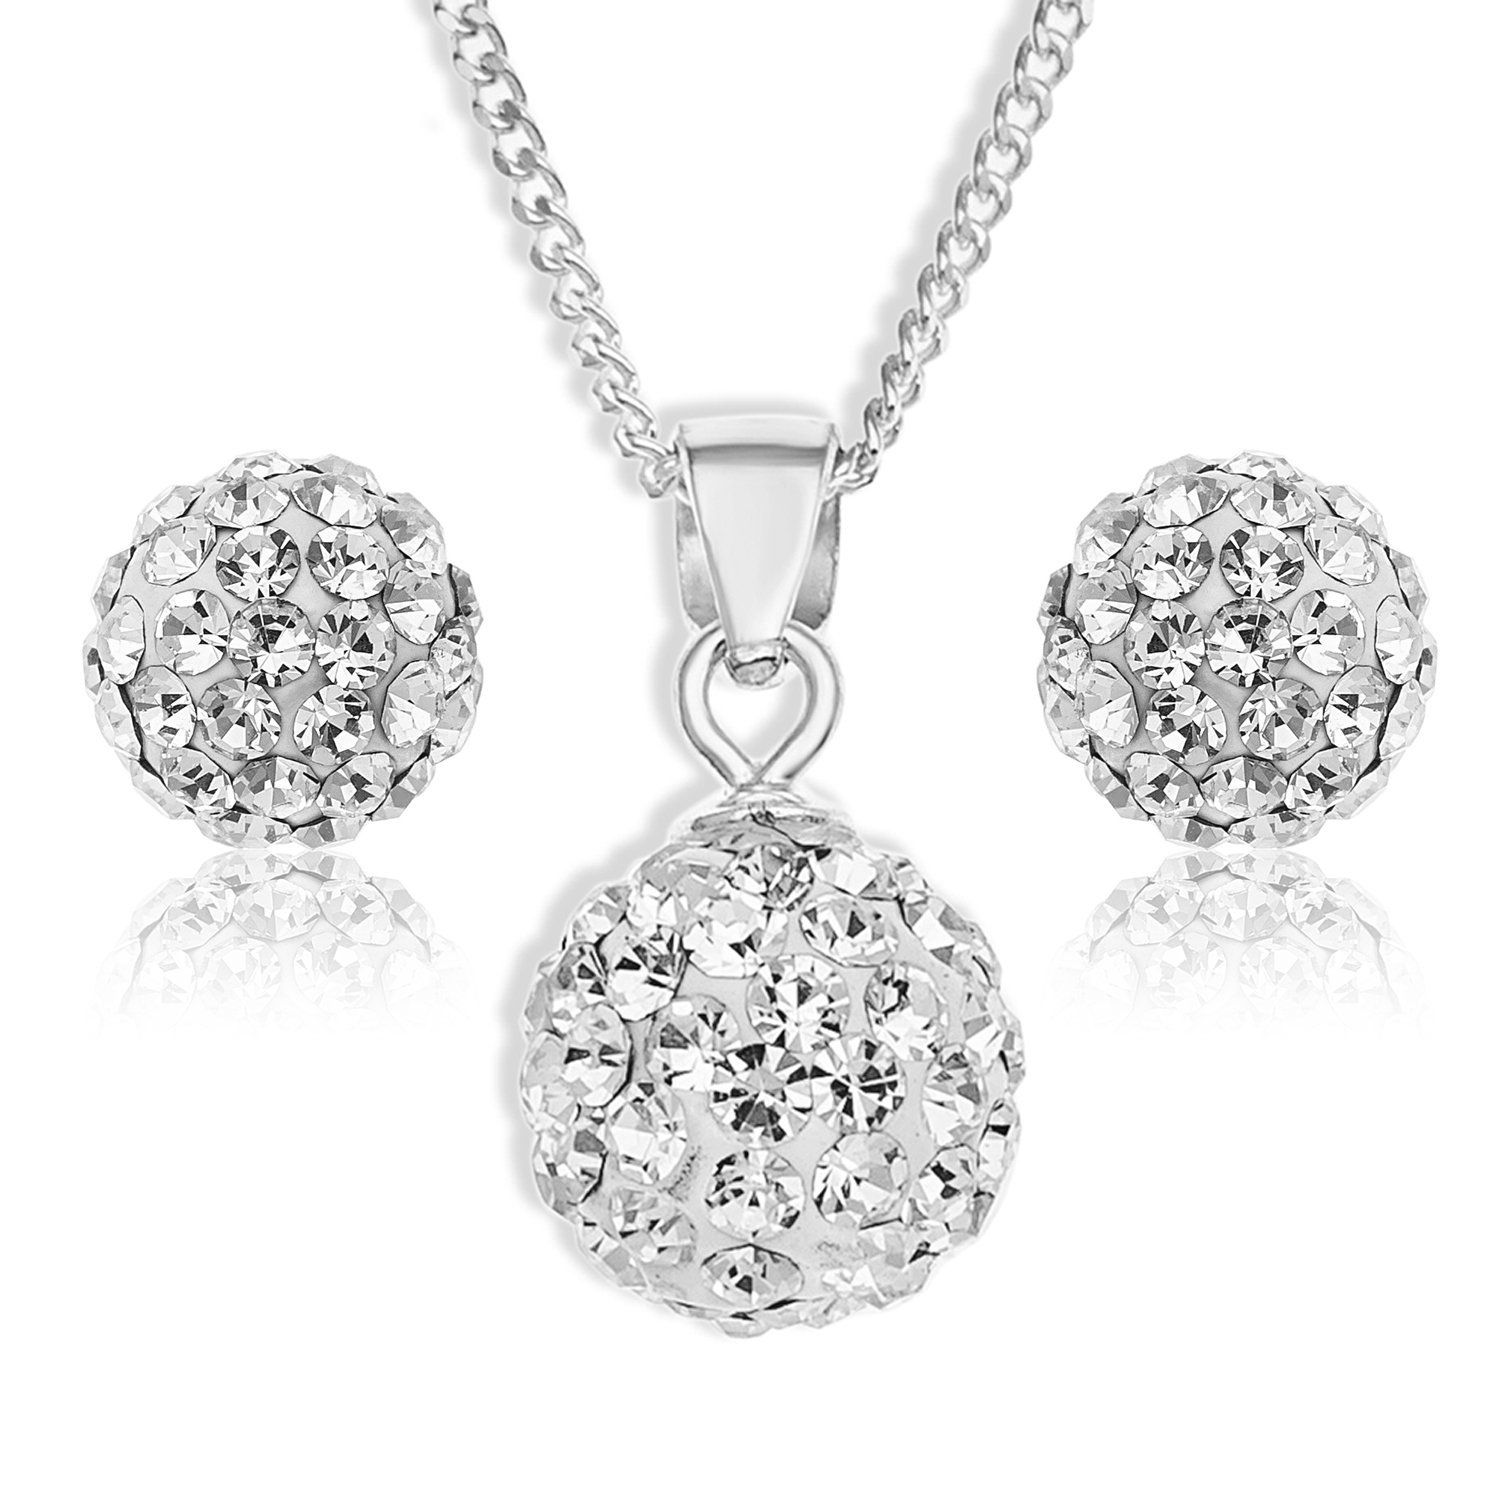 Ornami jewellery set with sterling silver crystal ball pendant